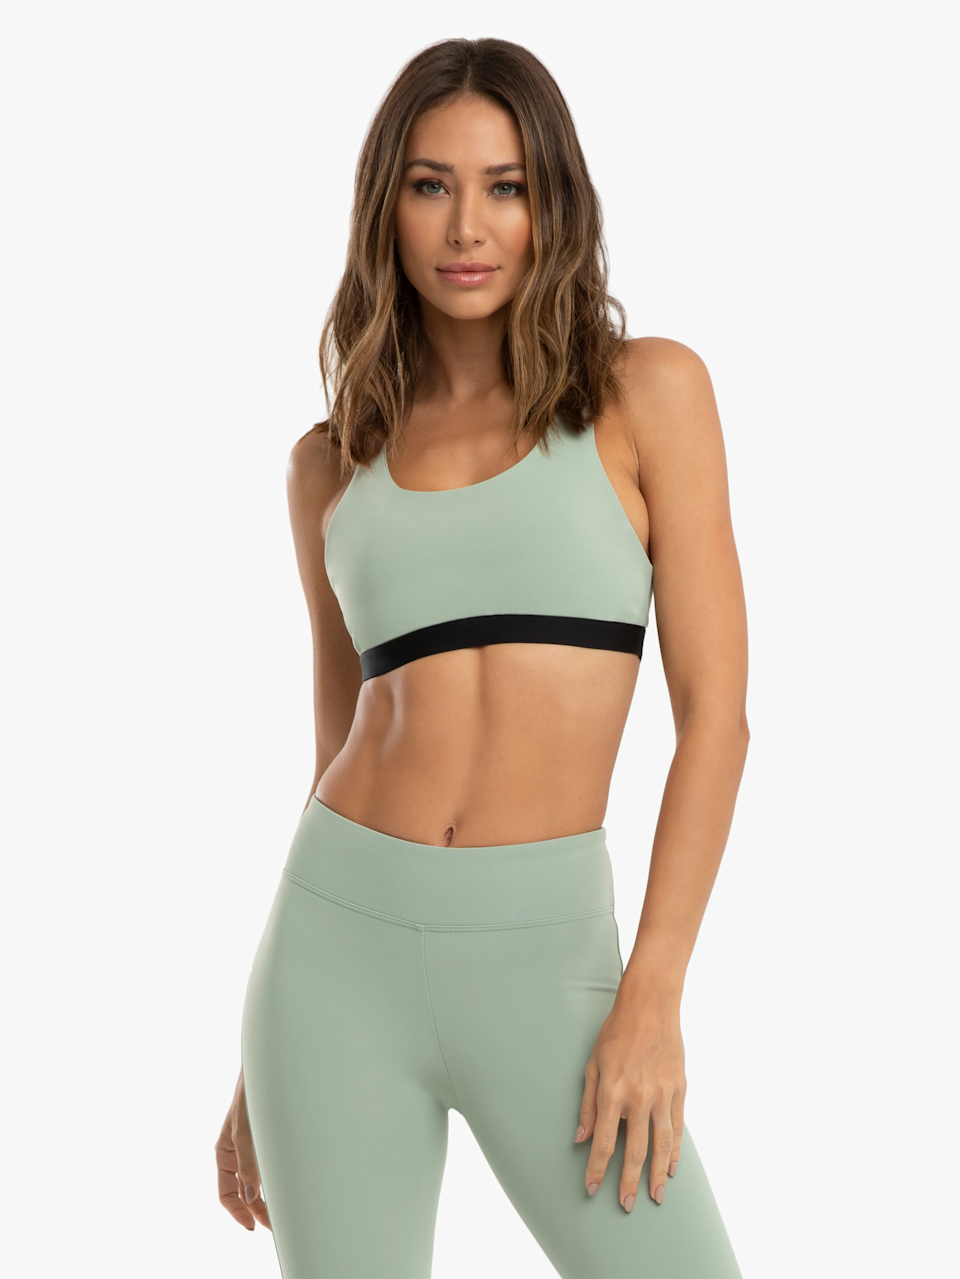 """<h2>Koral</h2><br>Koral's sports bras were the first ones I ever encountered that allowed me to run comfortably without doubling up. They're a little pricier than average, but in my eyes the quality makes the cost worth it.<br><br><strong>Koral</strong> Tax Blackout Sports Bra, $, available at <a href=""""https://go.skimresources.com/?id=30283X879131&url=https%3A%2F%2Fkoral.com%2Fcollections%2Fbras%2Fproducts%2Ftax-blackout-bra"""" rel=""""nofollow noopener"""" target=""""_blank"""" data-ylk=""""slk:Koral"""" class=""""link rapid-noclick-resp"""">Koral</a>"""